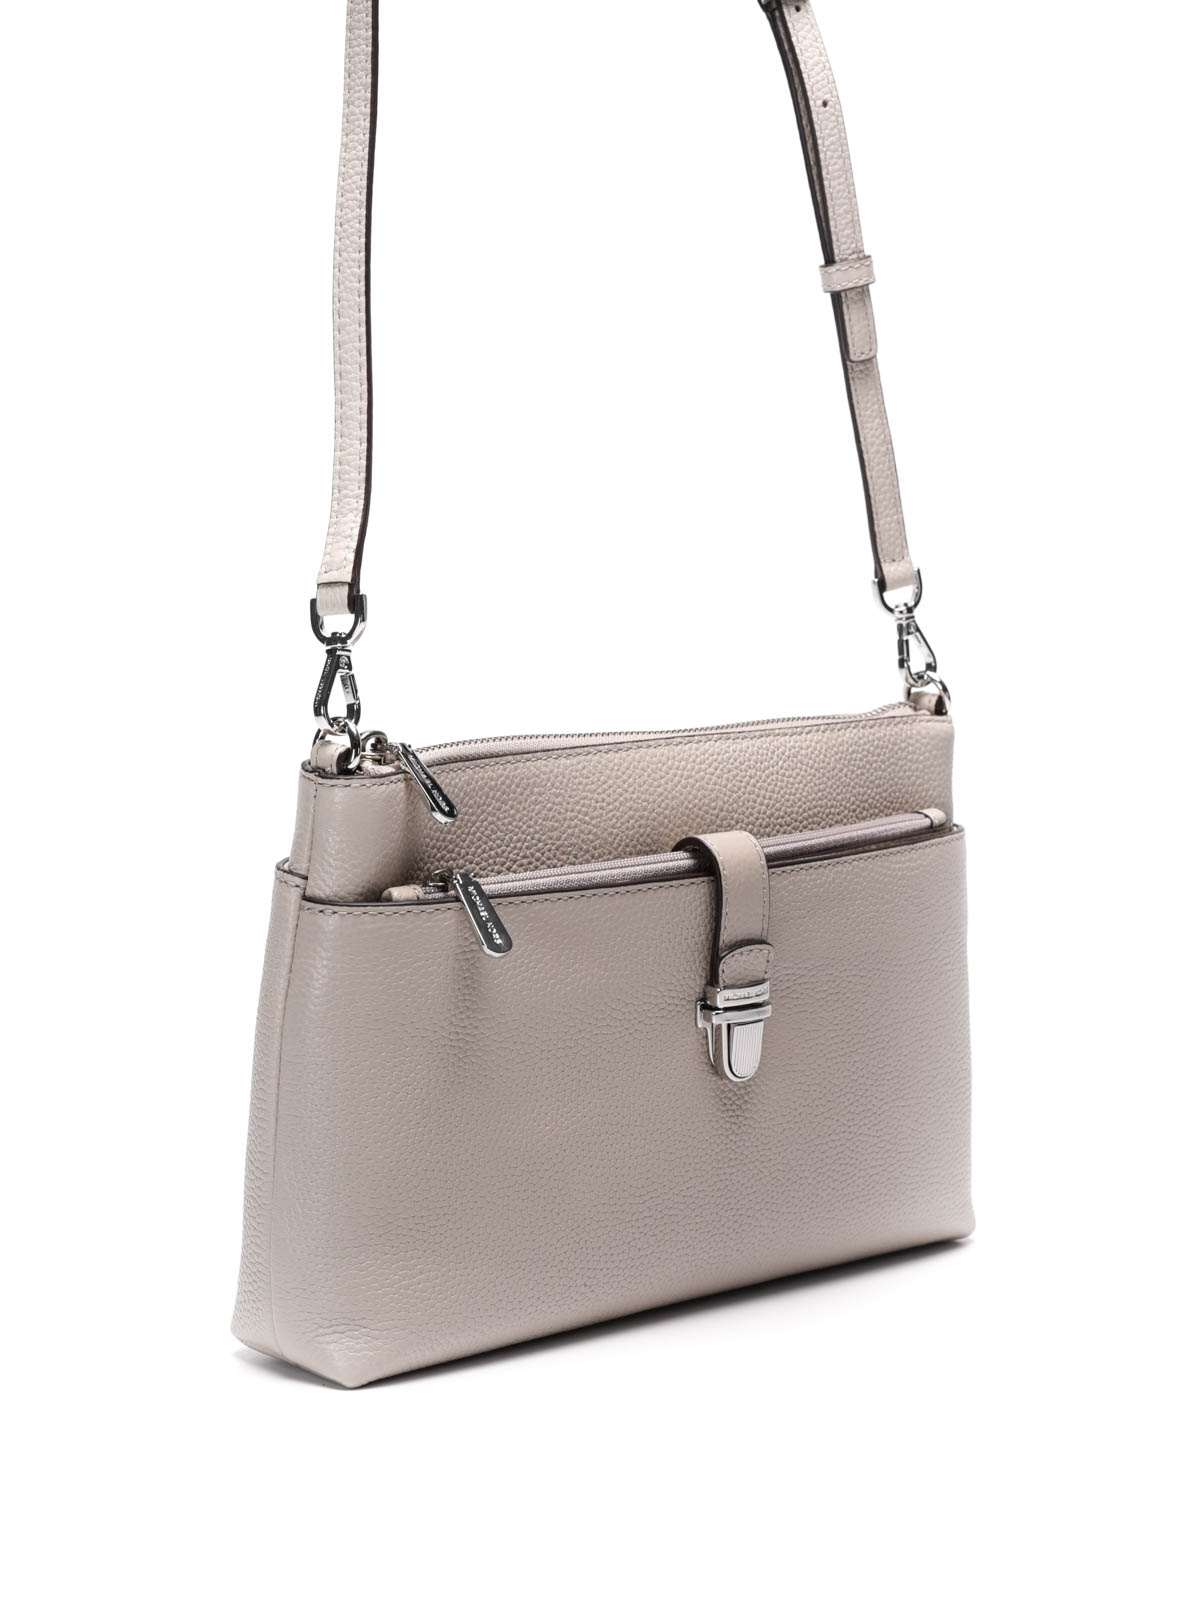 e601063c48c245 Hammered leather crossbody bag by Michael Kors - cross body bags | iKRIX